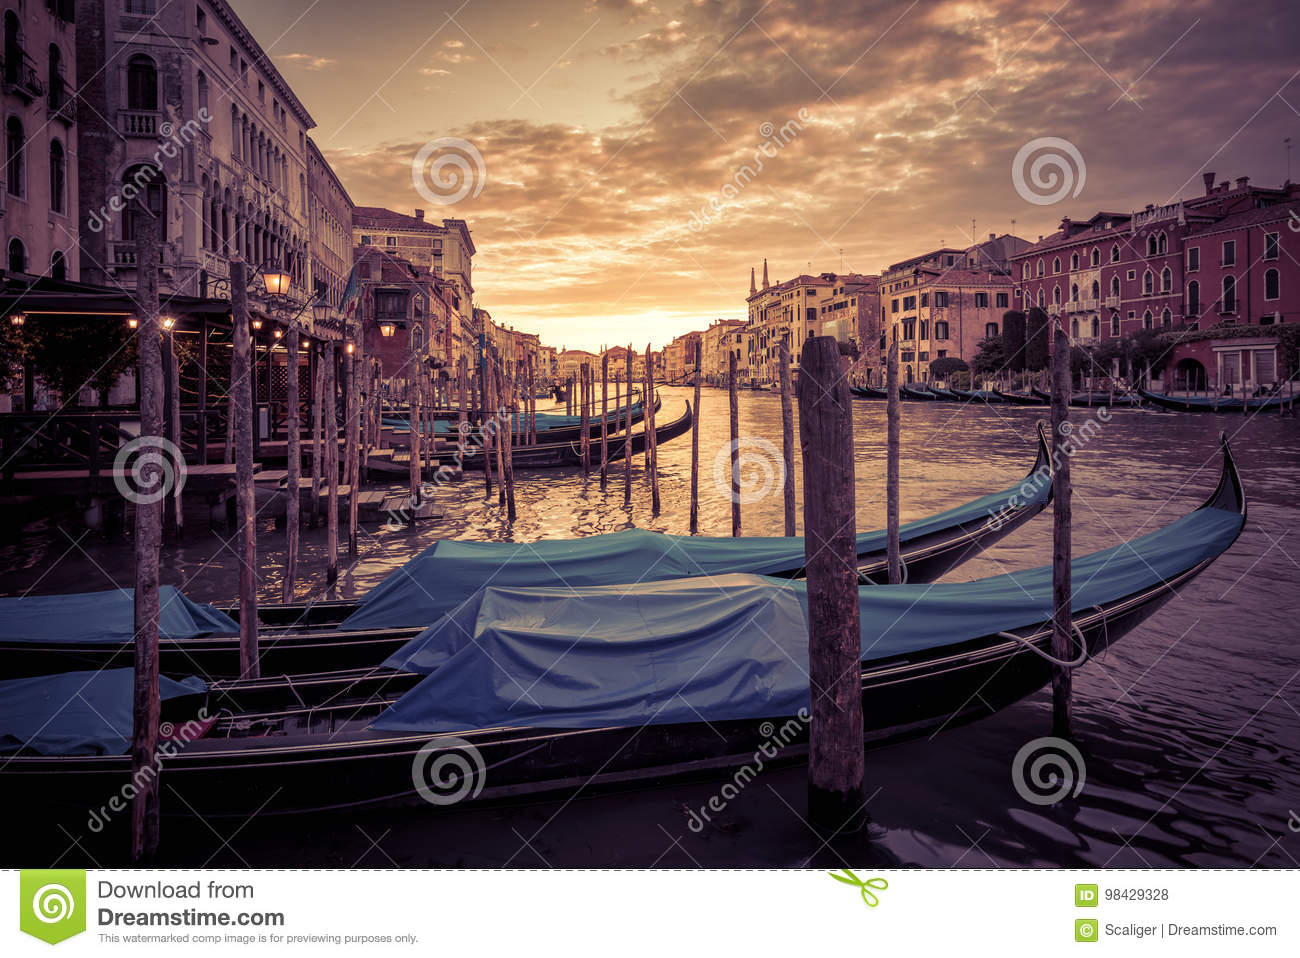 Grand Canal bei Sonnenuntergang in Venedig